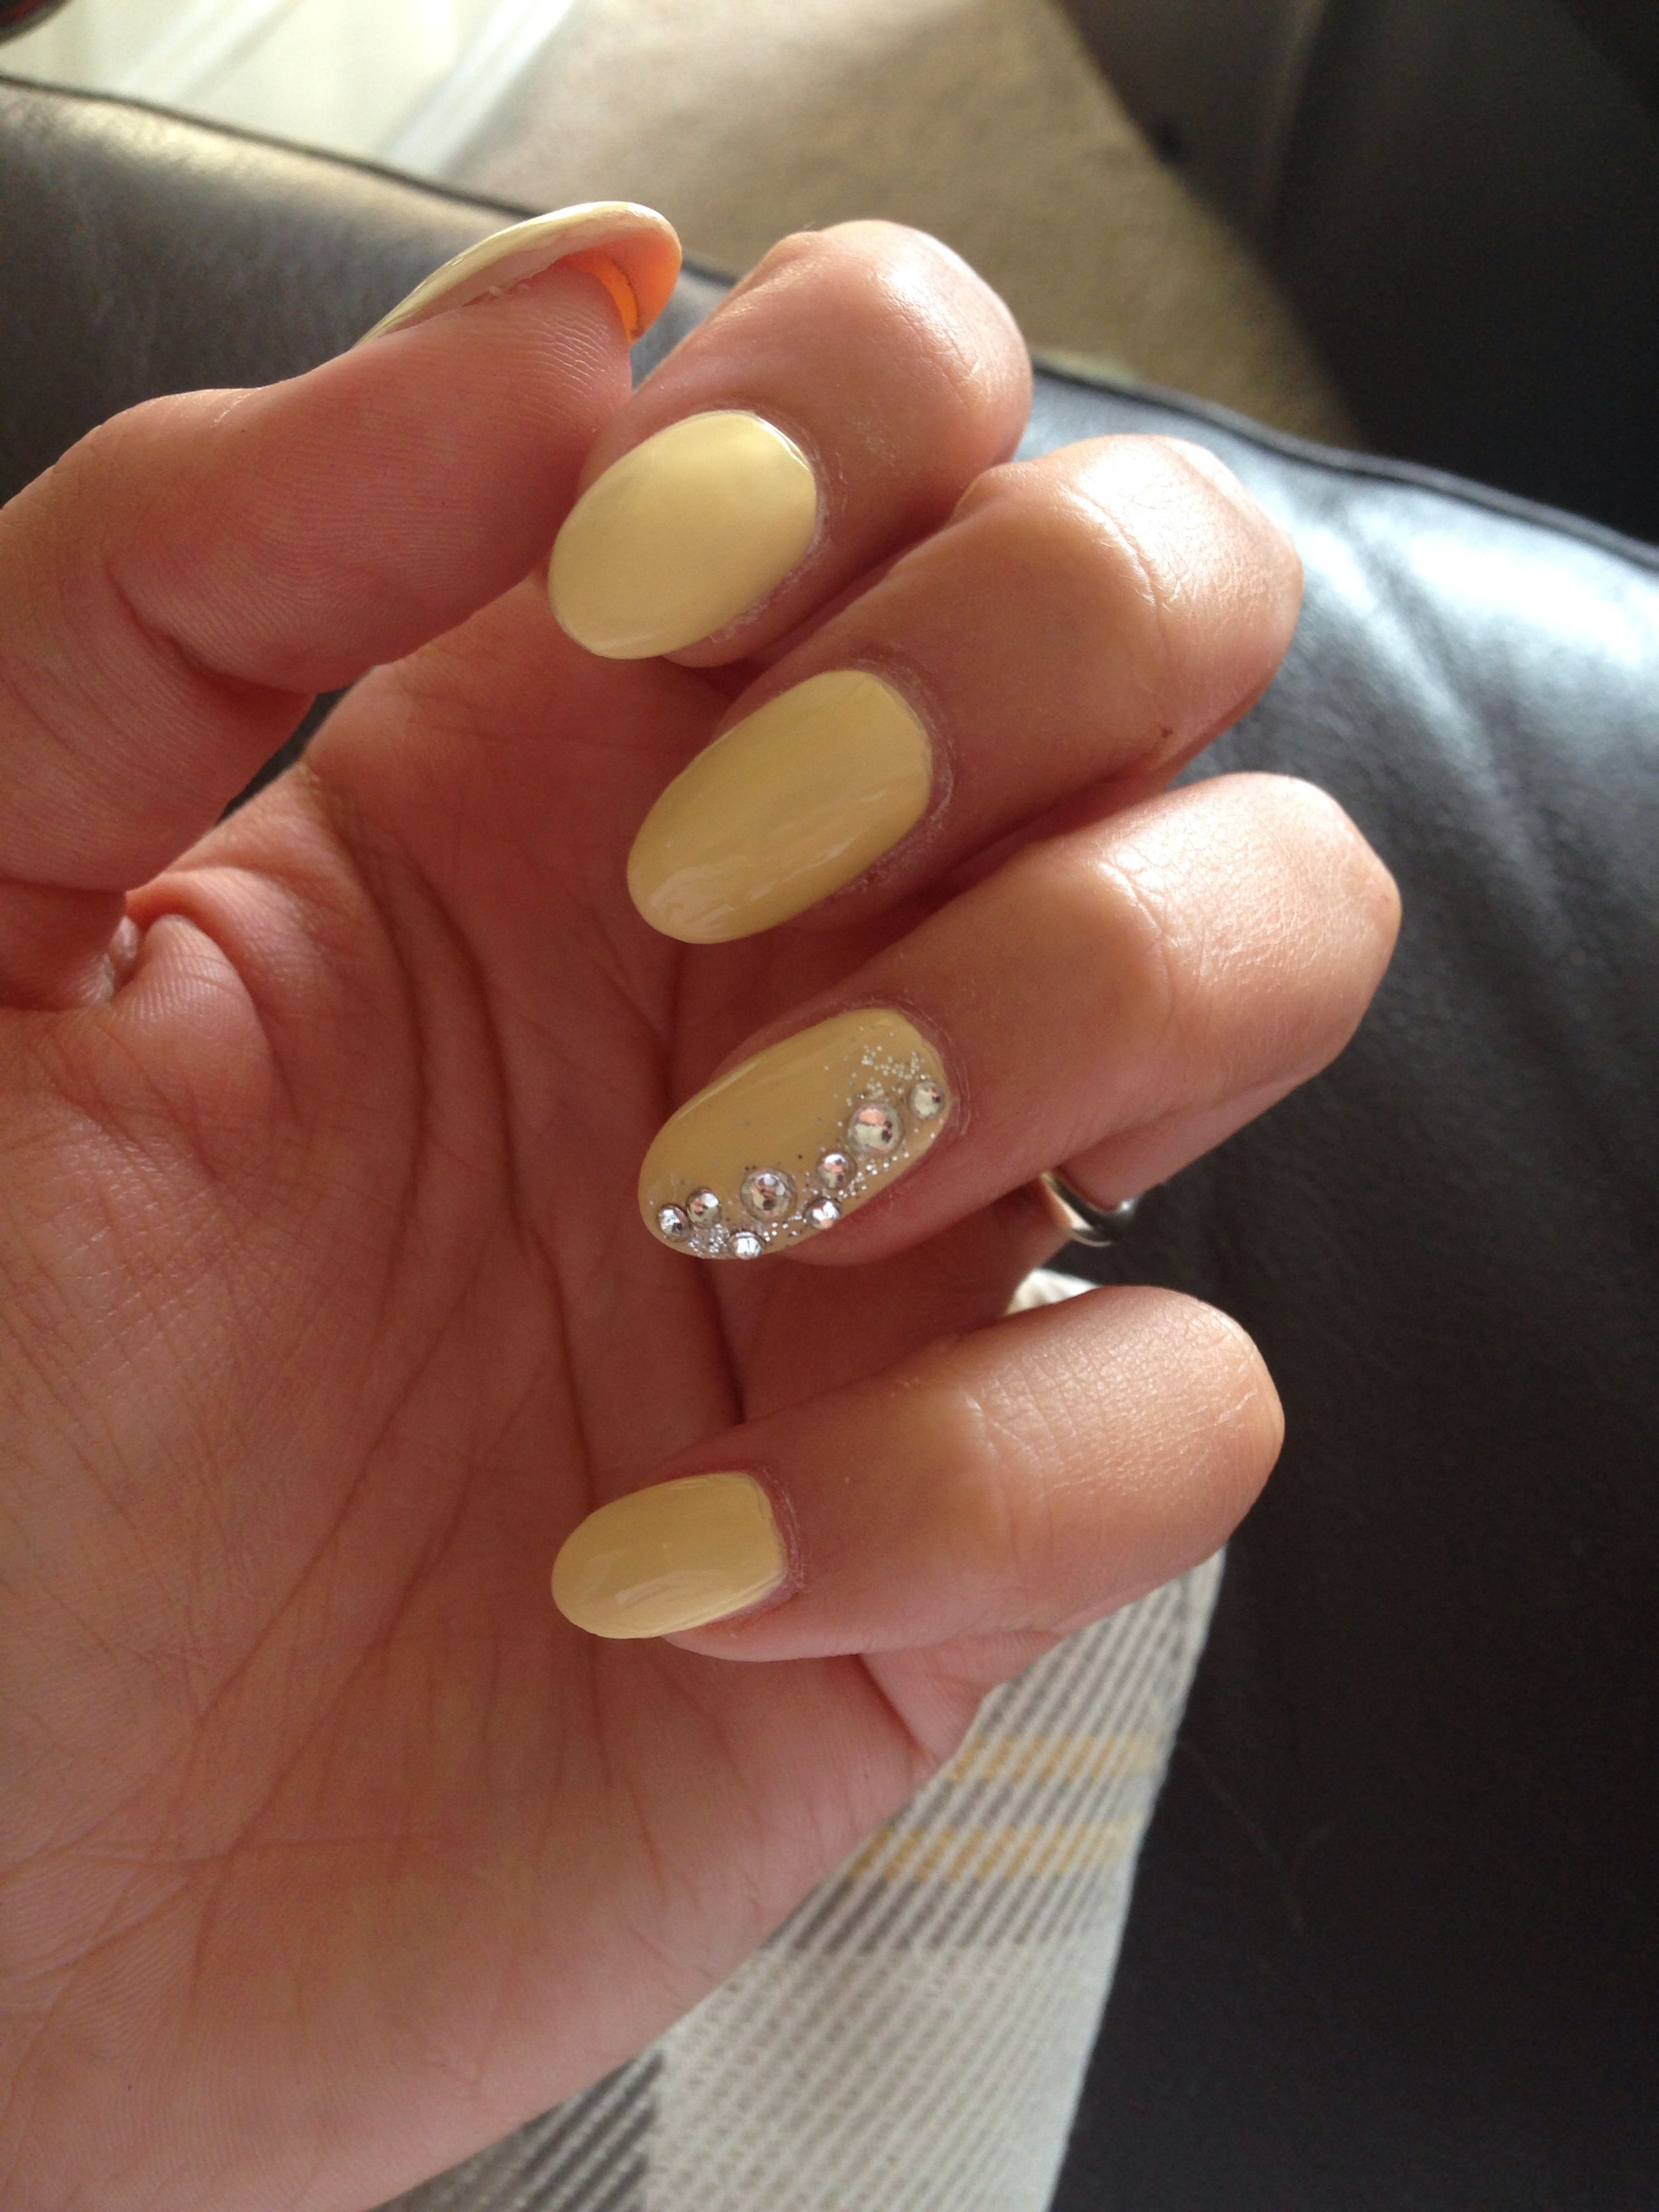 Lemon Acrylic Nails With Silver Glitter And Gems Nails Acrylic Nails Silver Glitter